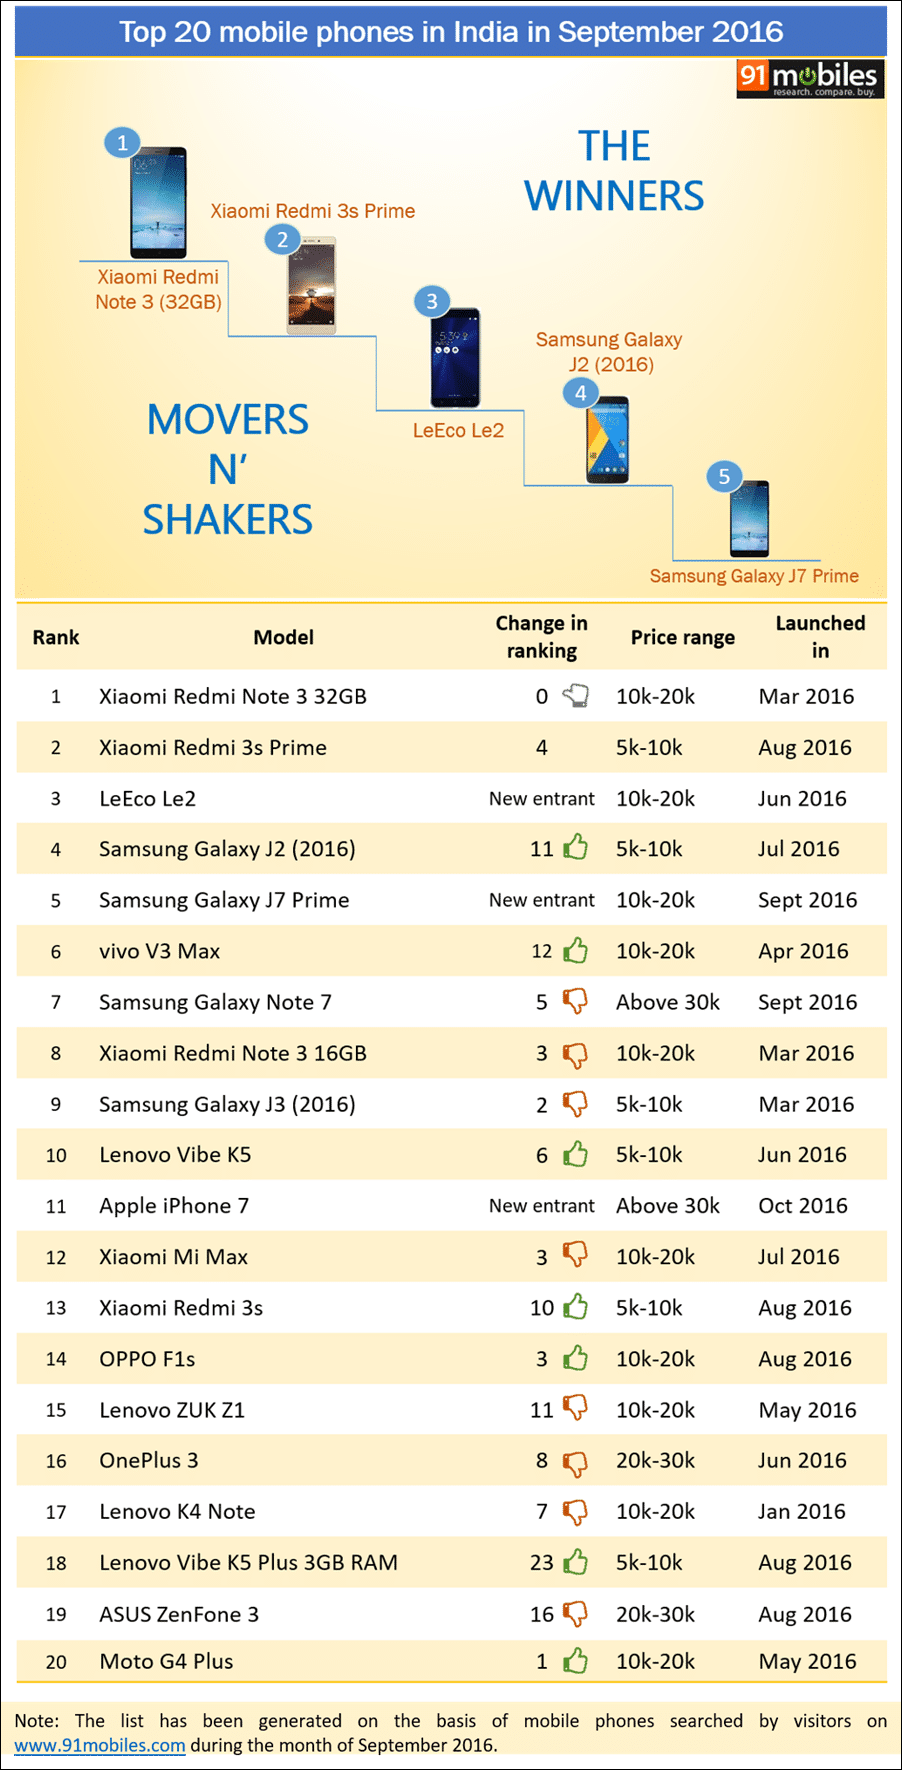 Top 20 mobile phones in India in September 2016 - 91mobiles insights